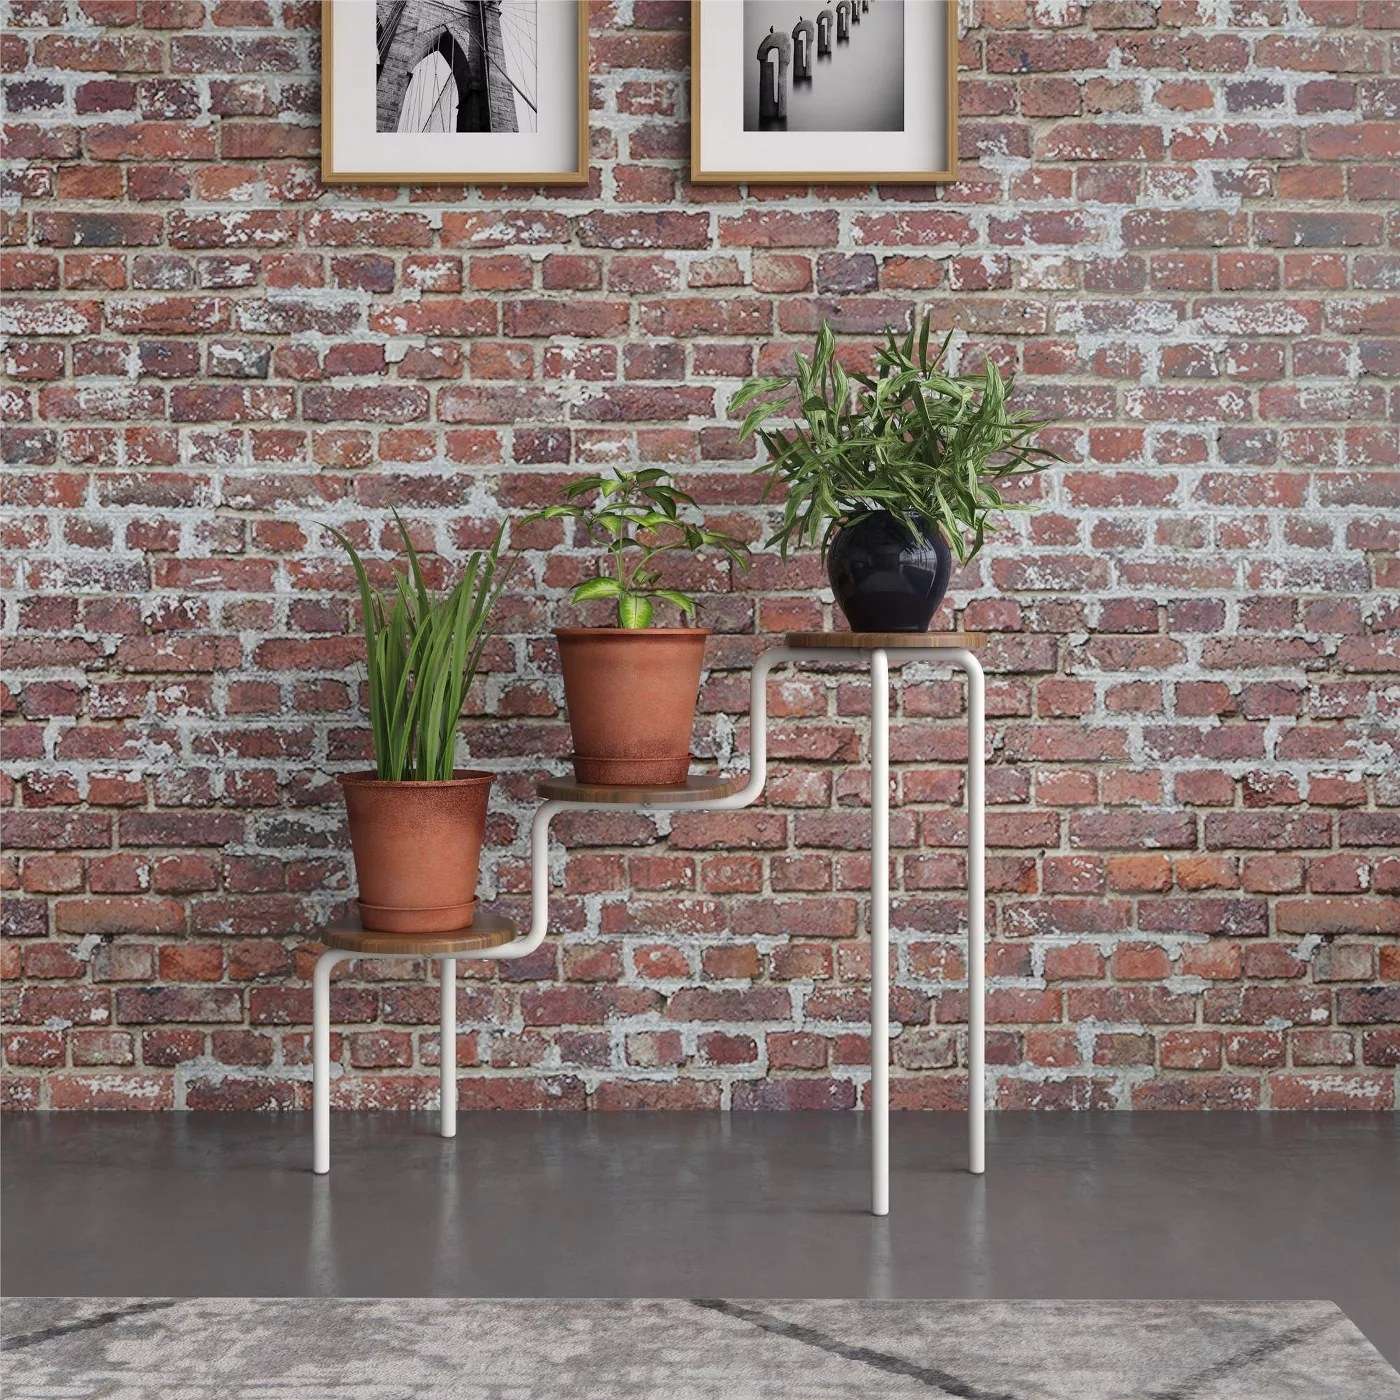 The three-tiered plant stand